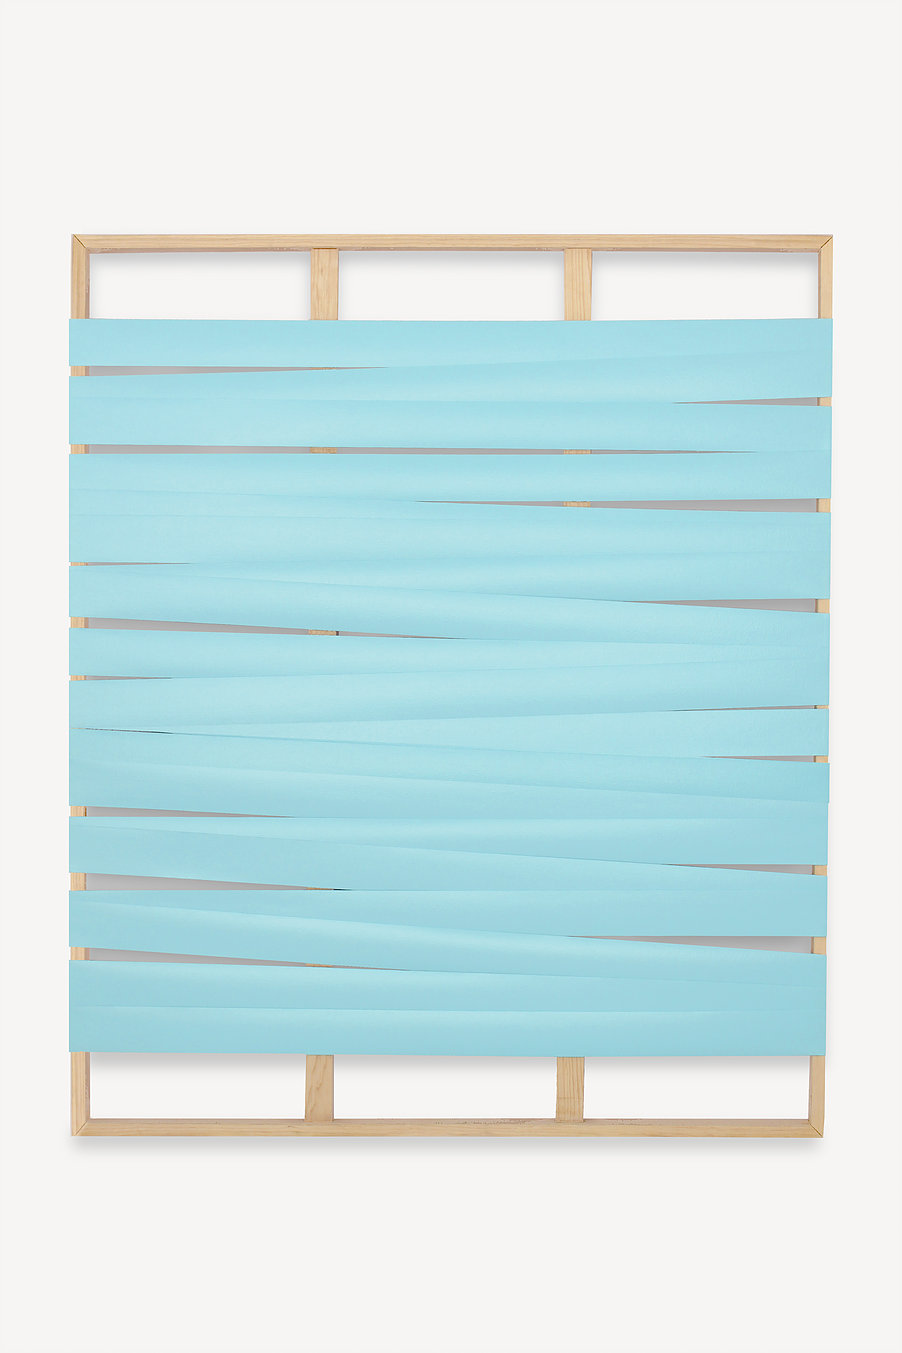 Líneas y espacios. N°5  , 2017  Acrylic on canvas and wooden stretcher  152 x 126 cm